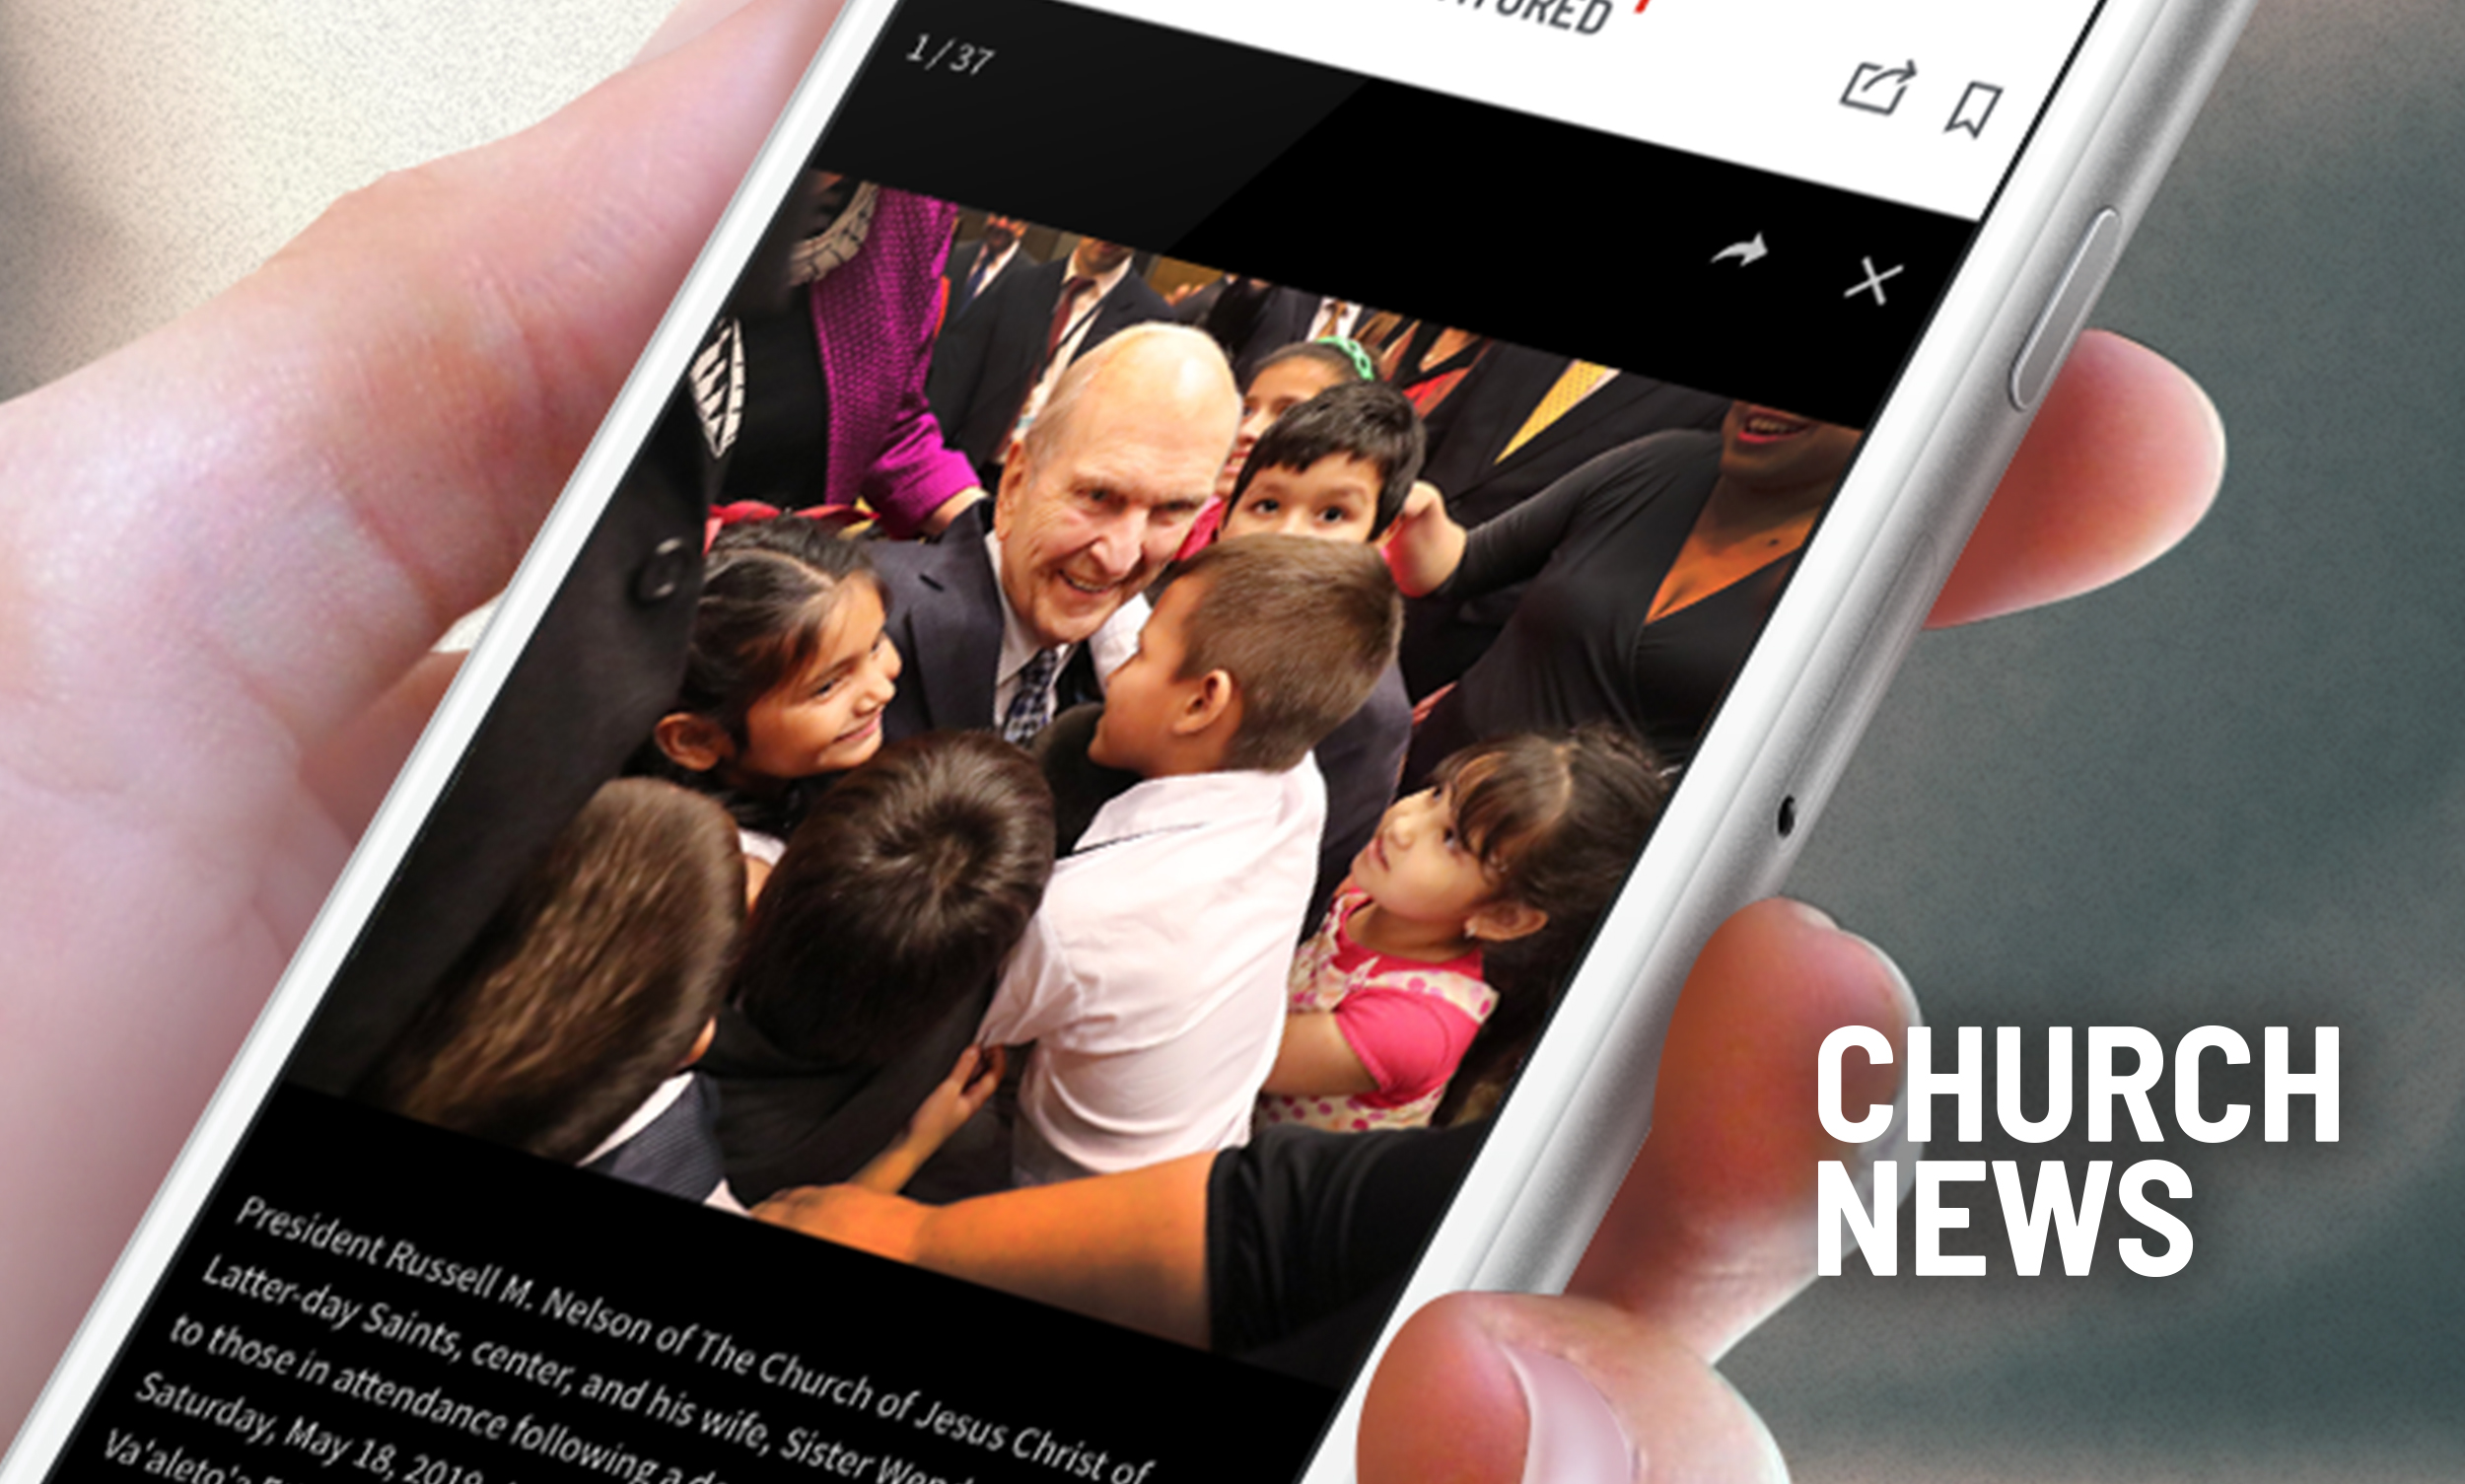 The Church News website and app have been launched in Spanish and Portuguese.